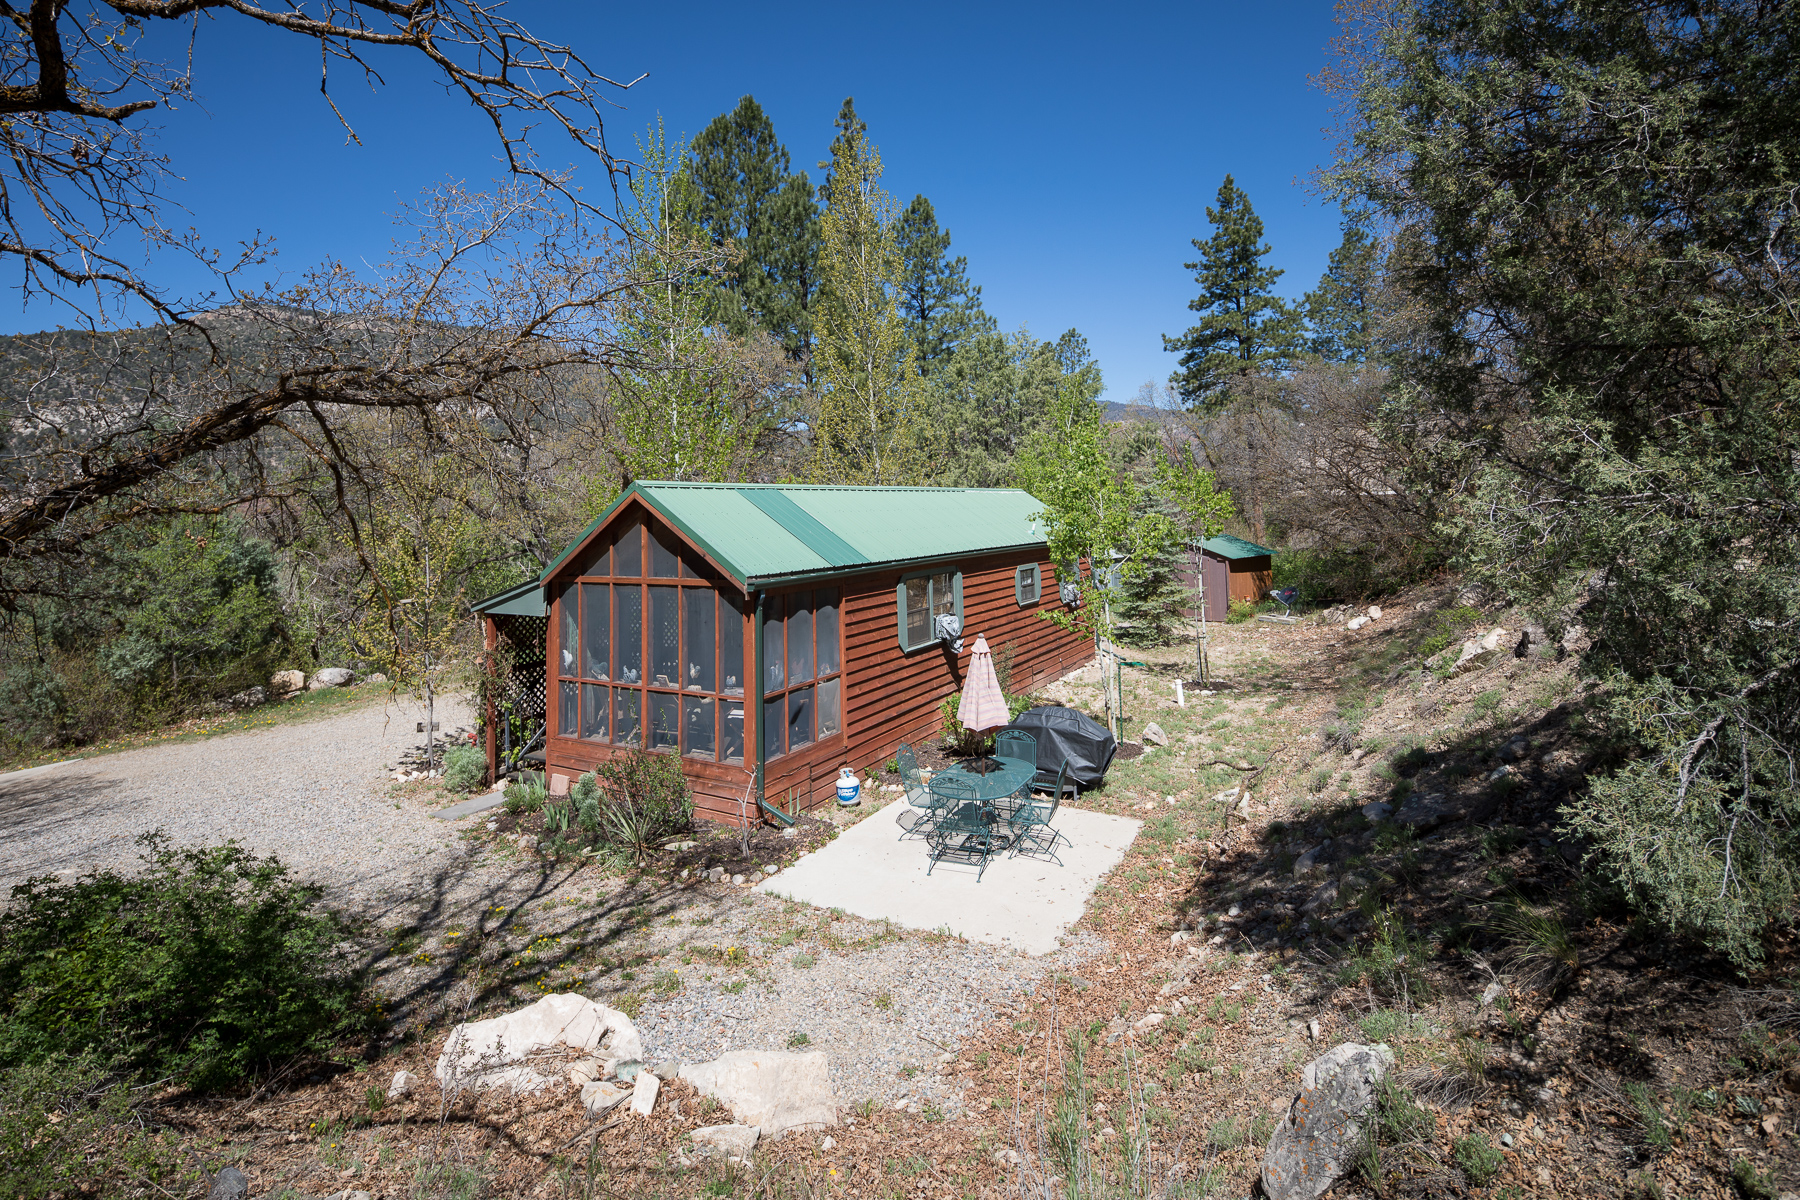 Additional photo for property listing at 1862 & 1866 CR 250 1862 & 1866 CR 250 Durango, Colorado 81301 United States